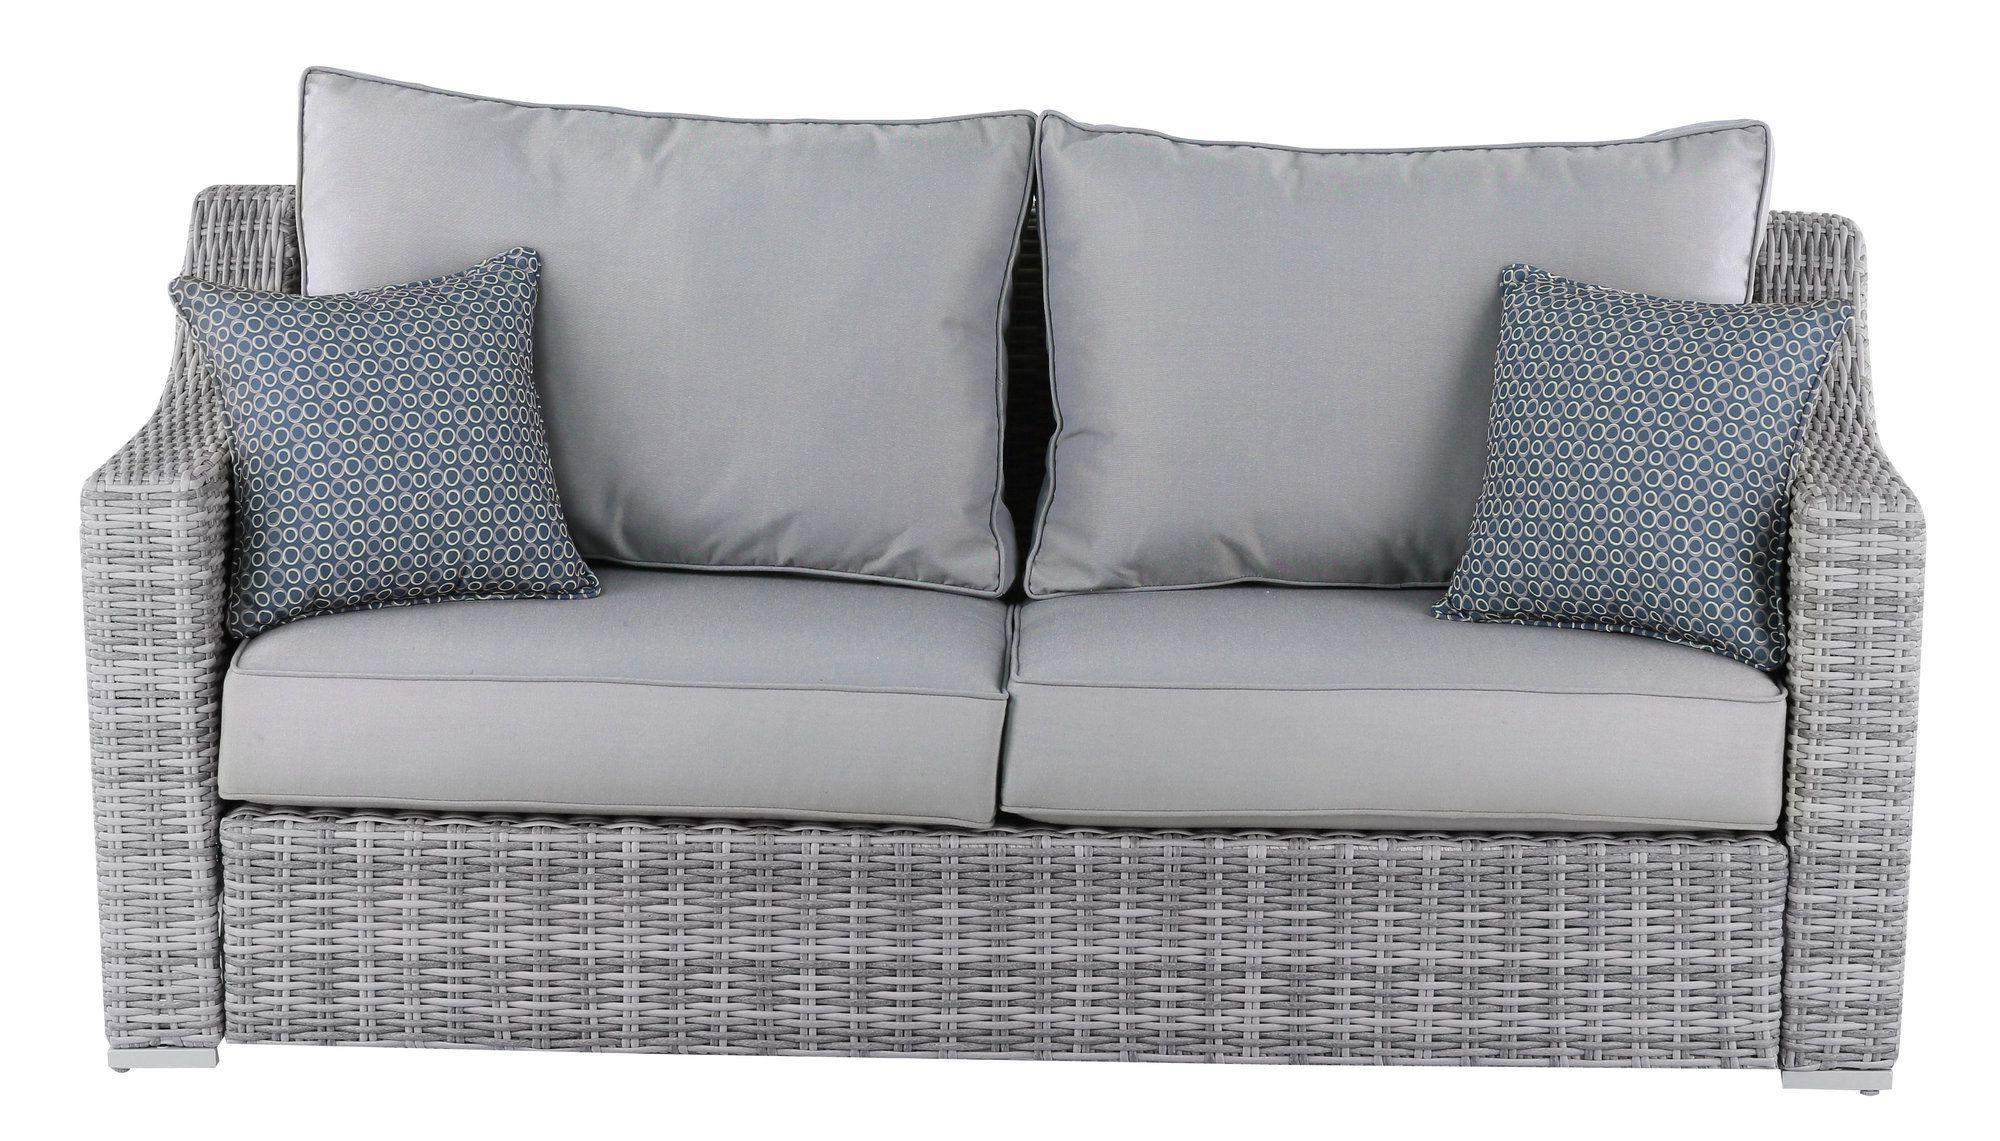 Sofa, Outdoor Sofa Intended For Clary Teak Lounge Patio Daybeds With Cushion (View 19 of 20)